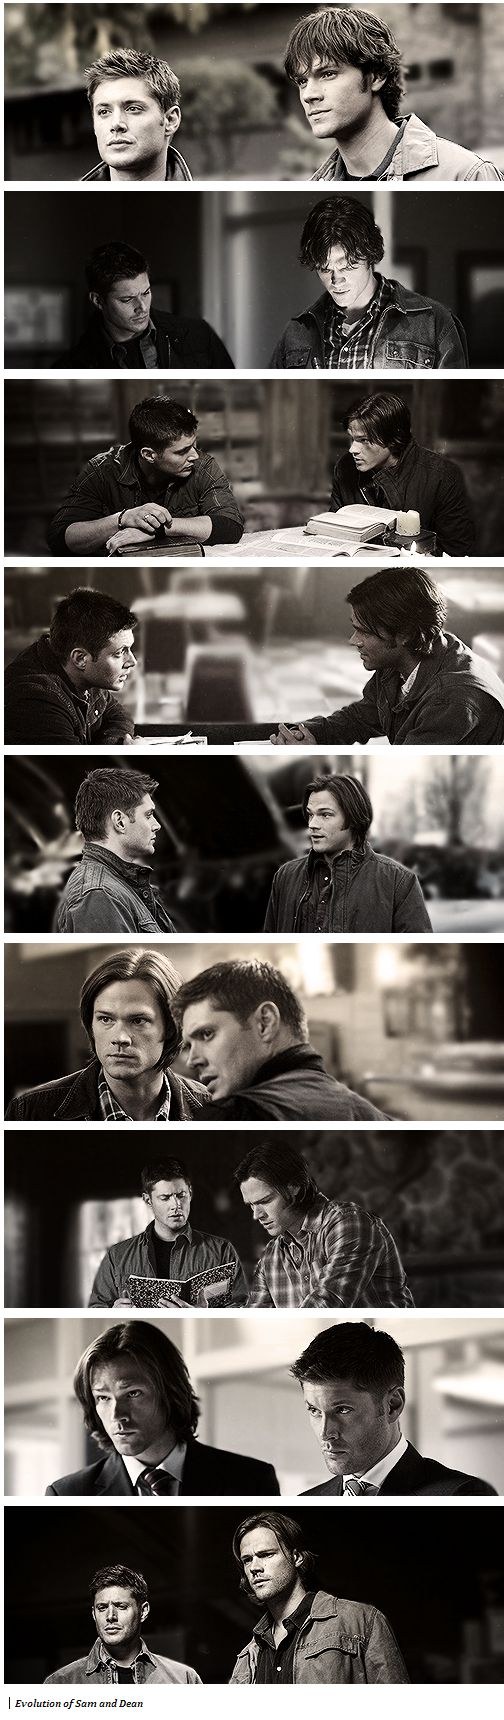 The evolution of Sam and Dean.. i can tell the seasons by the length of sam's hair. so really its the evolution of sam